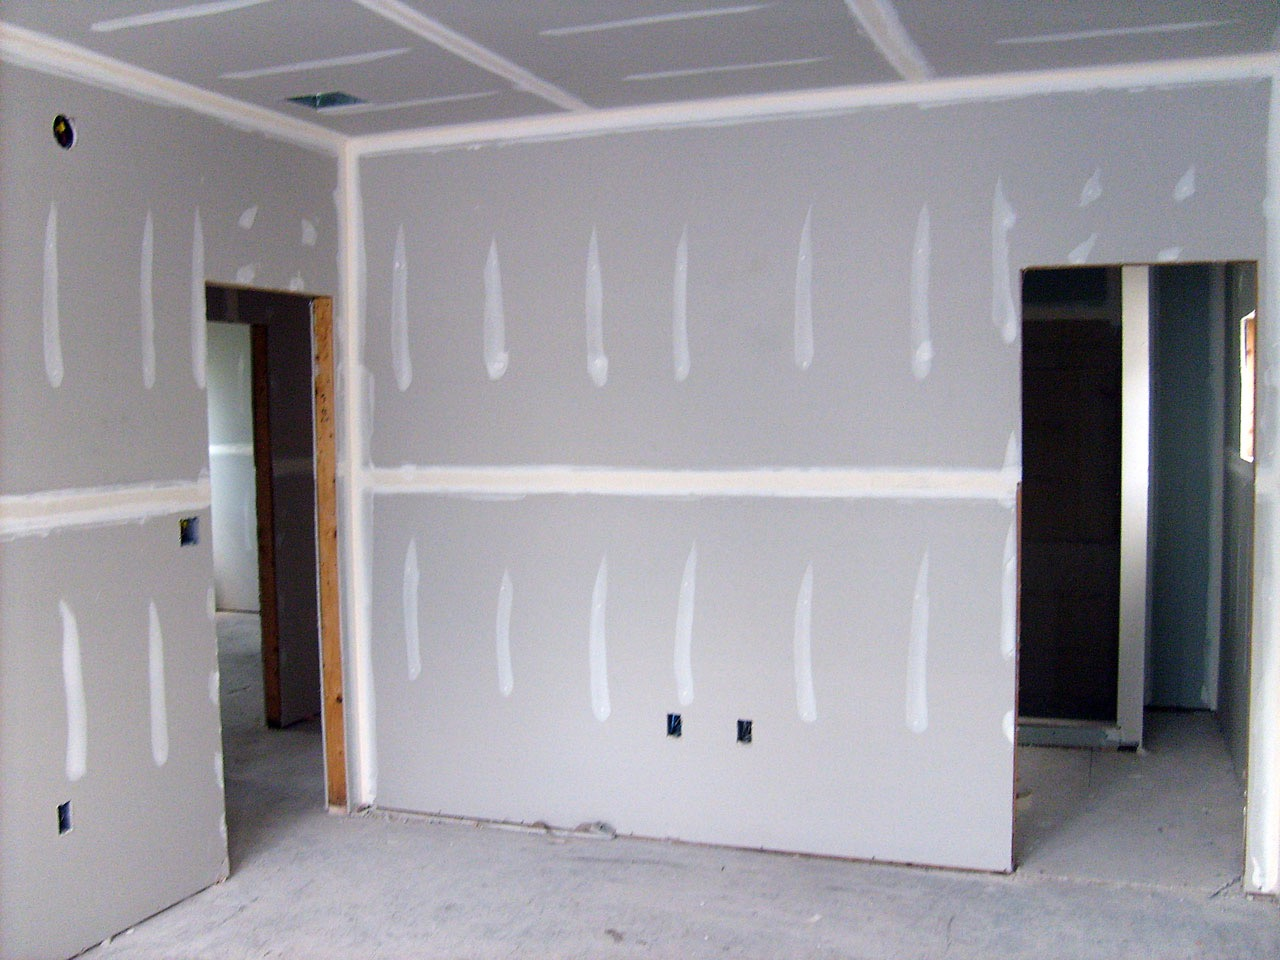 drywall in the middle of construction